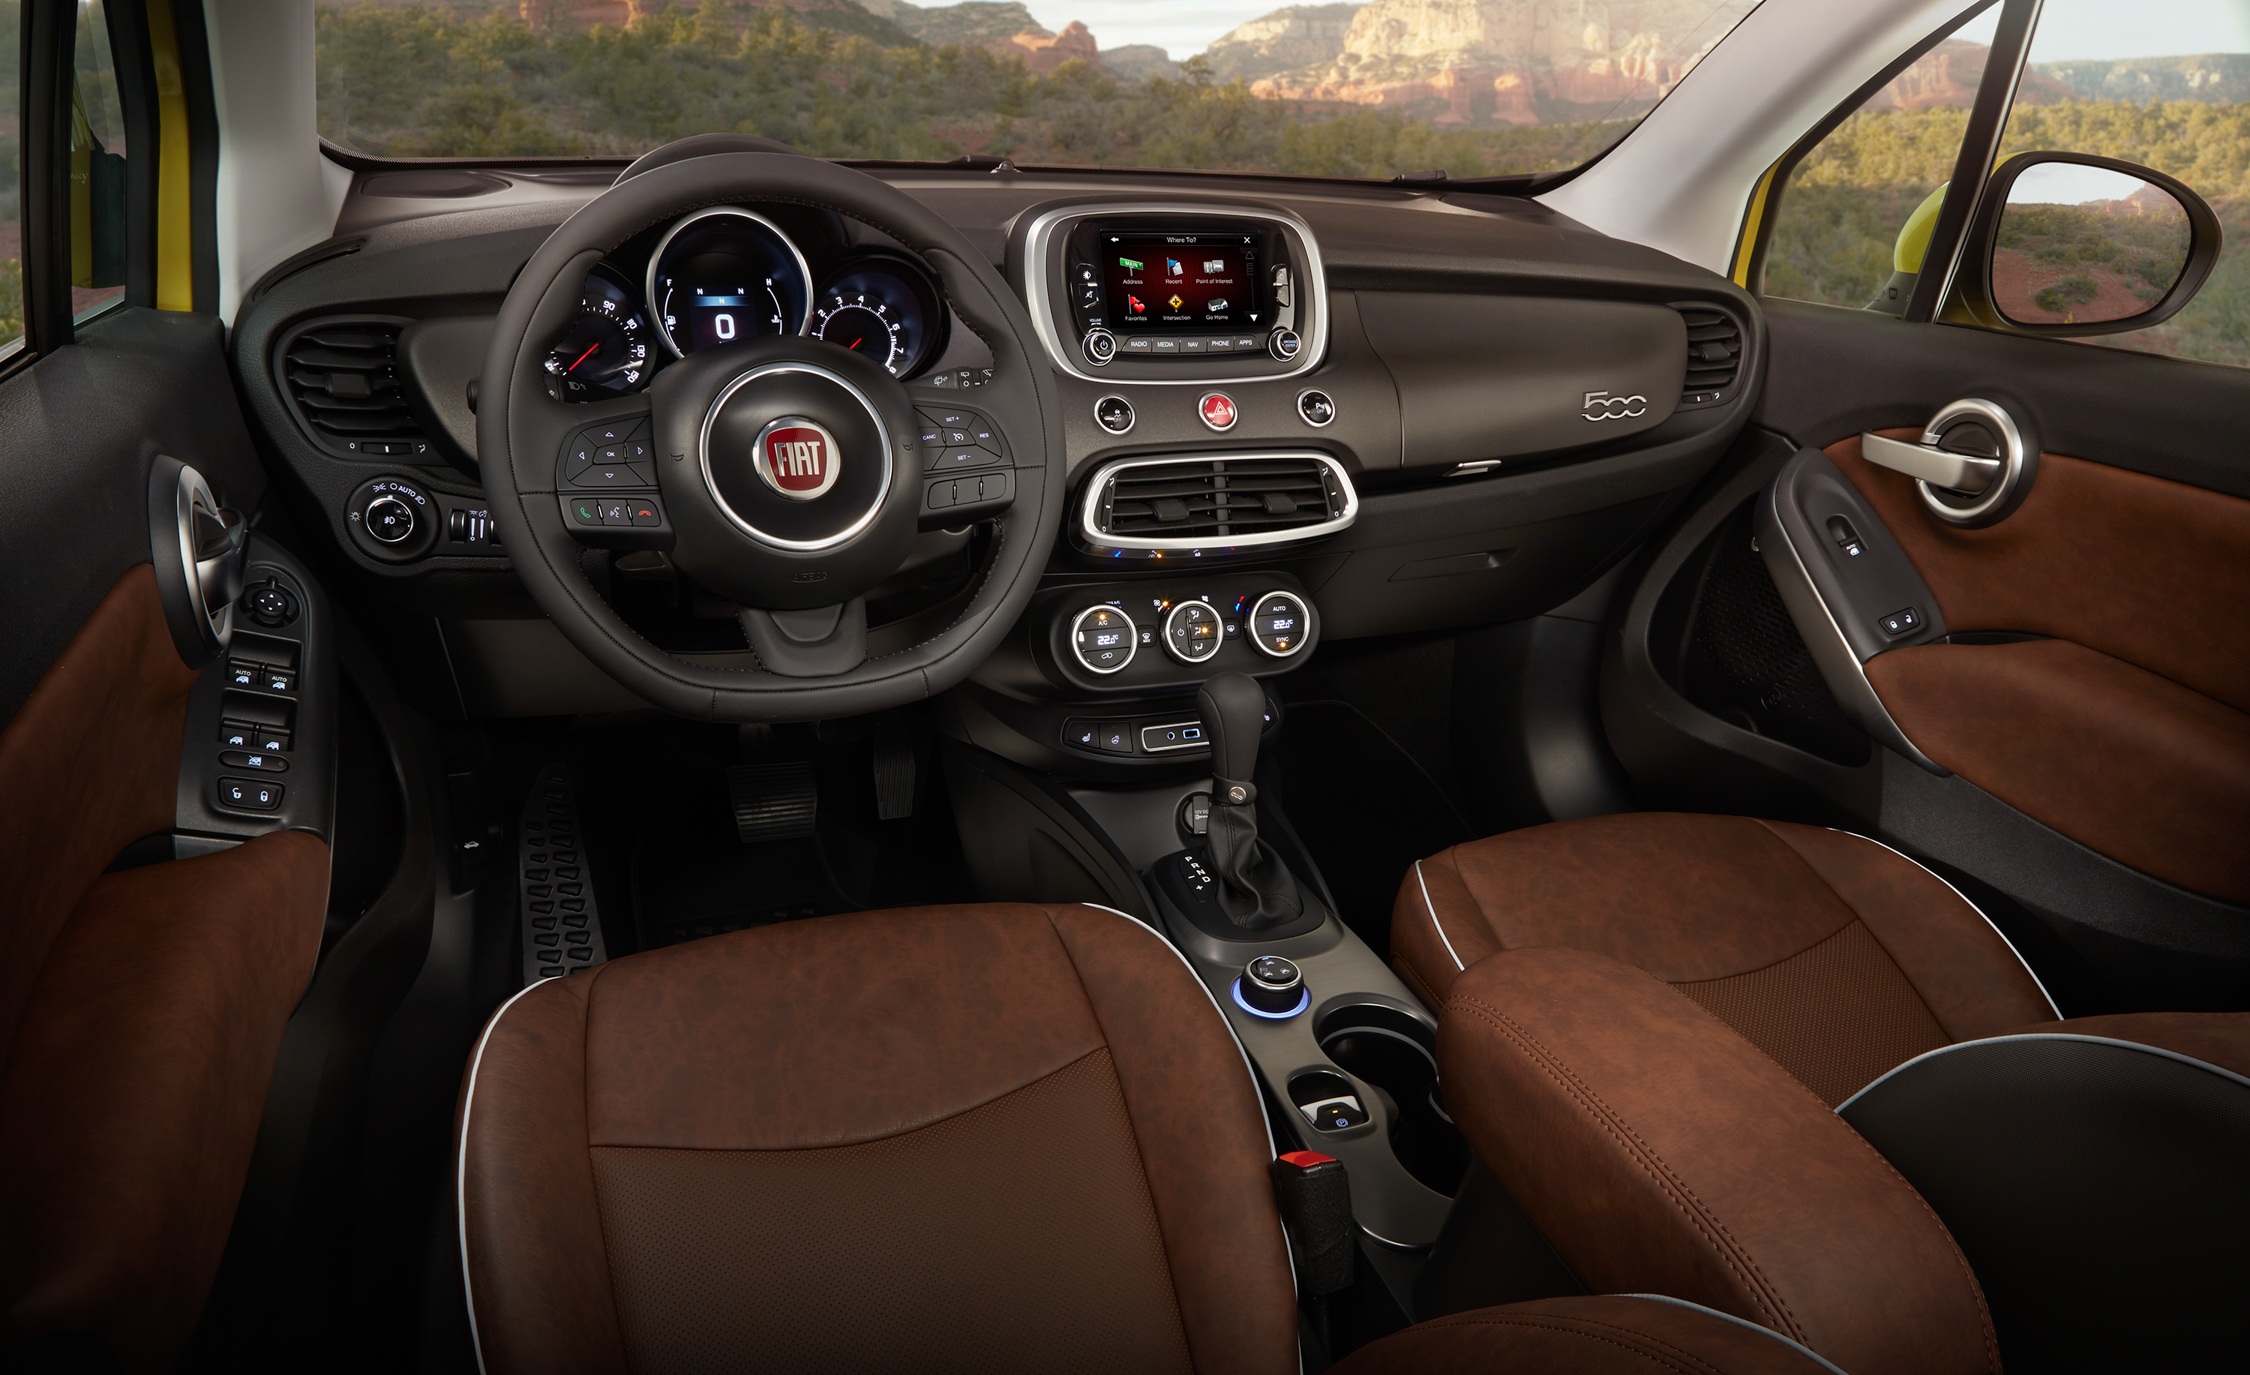 2016 Fiat 500X Trekking Plus Interior